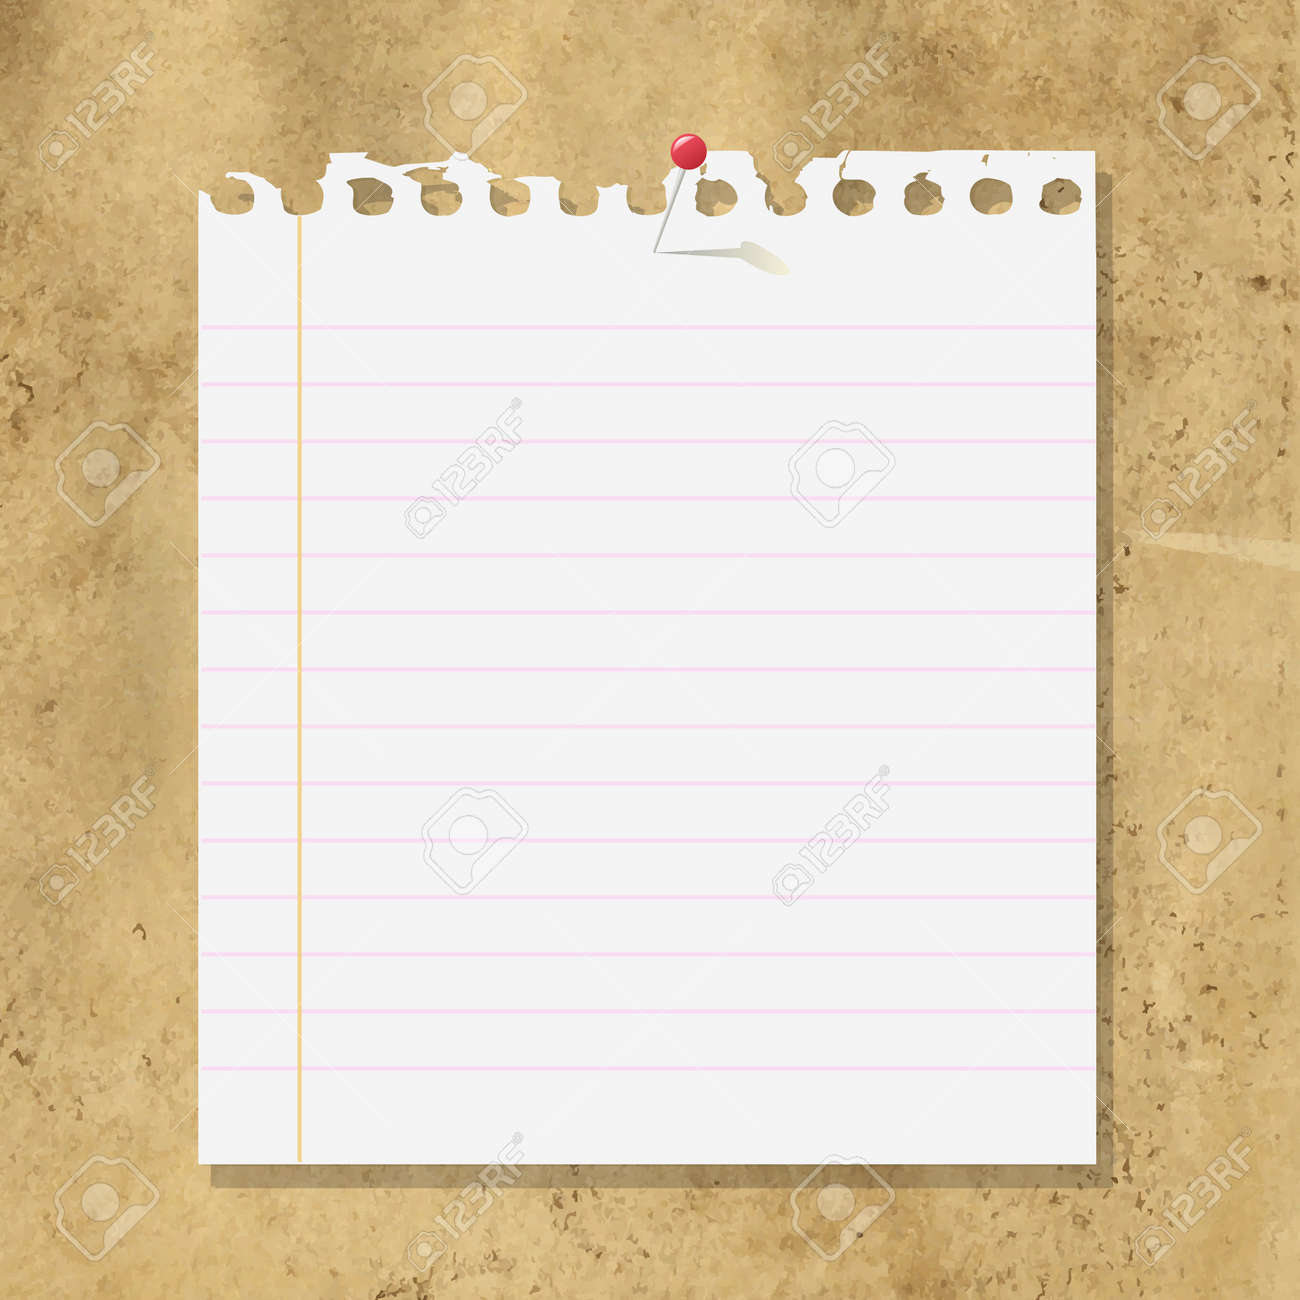 Beautiful Blank Note Paper On Cardboard Background, Vector Illustration Stock Vector    15155476 Intended Blank Paper Background